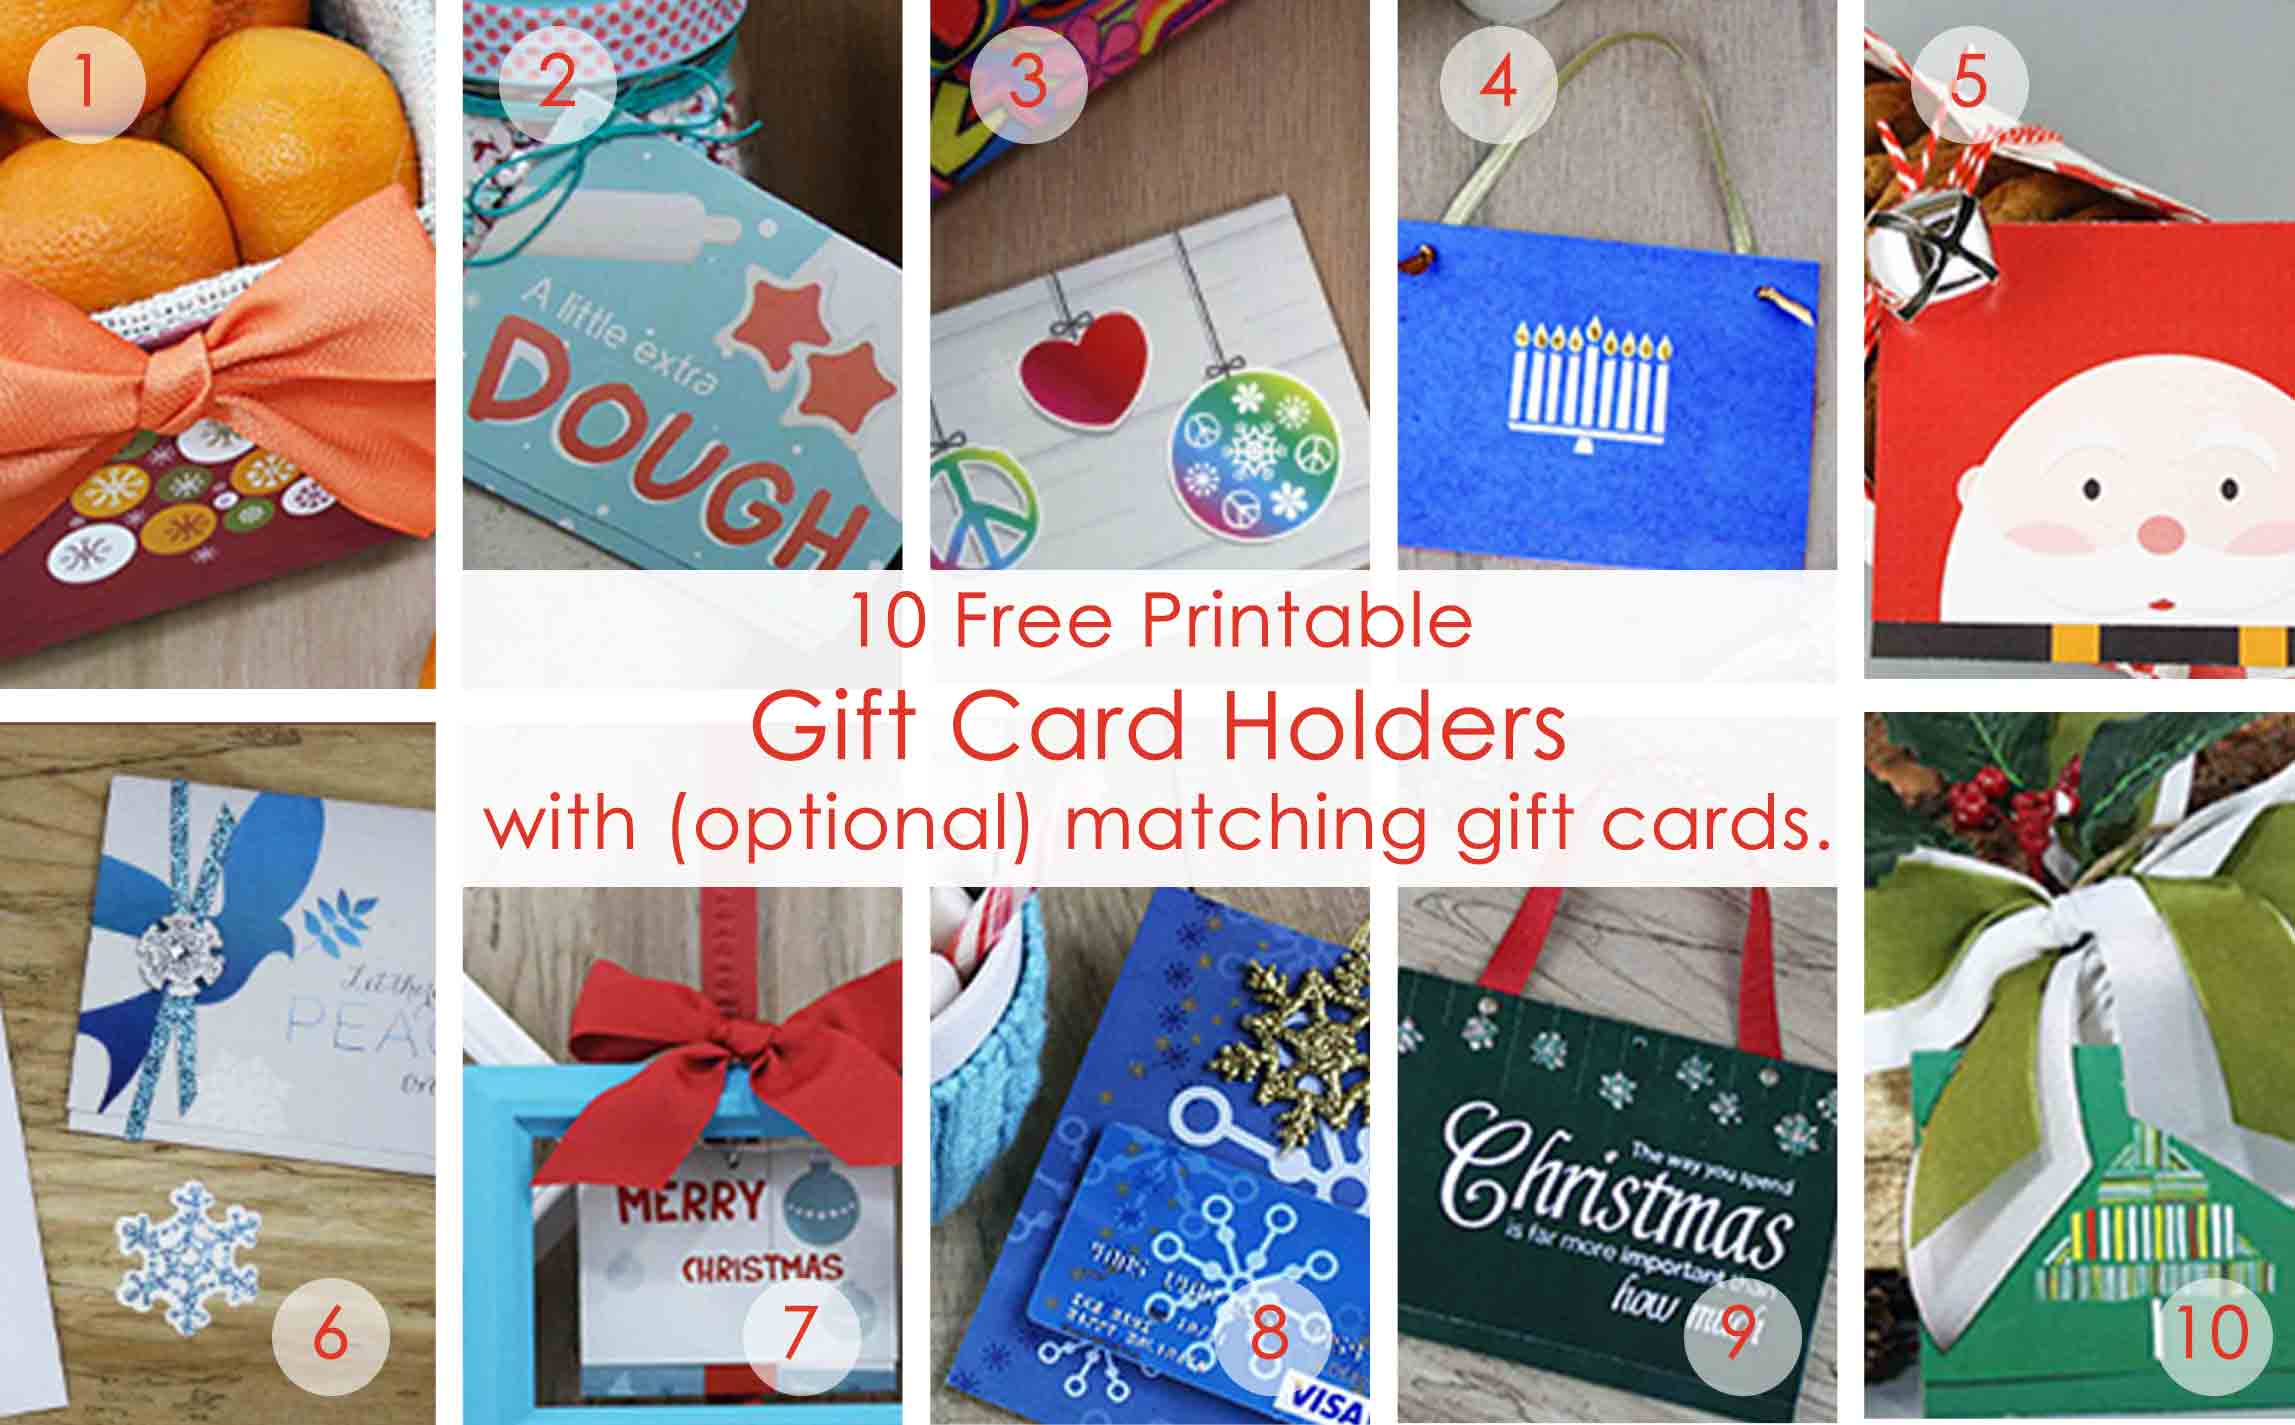 Over 50 printable gift card holders for the holidays gcg roundup giftcards 10 negle Choice Image